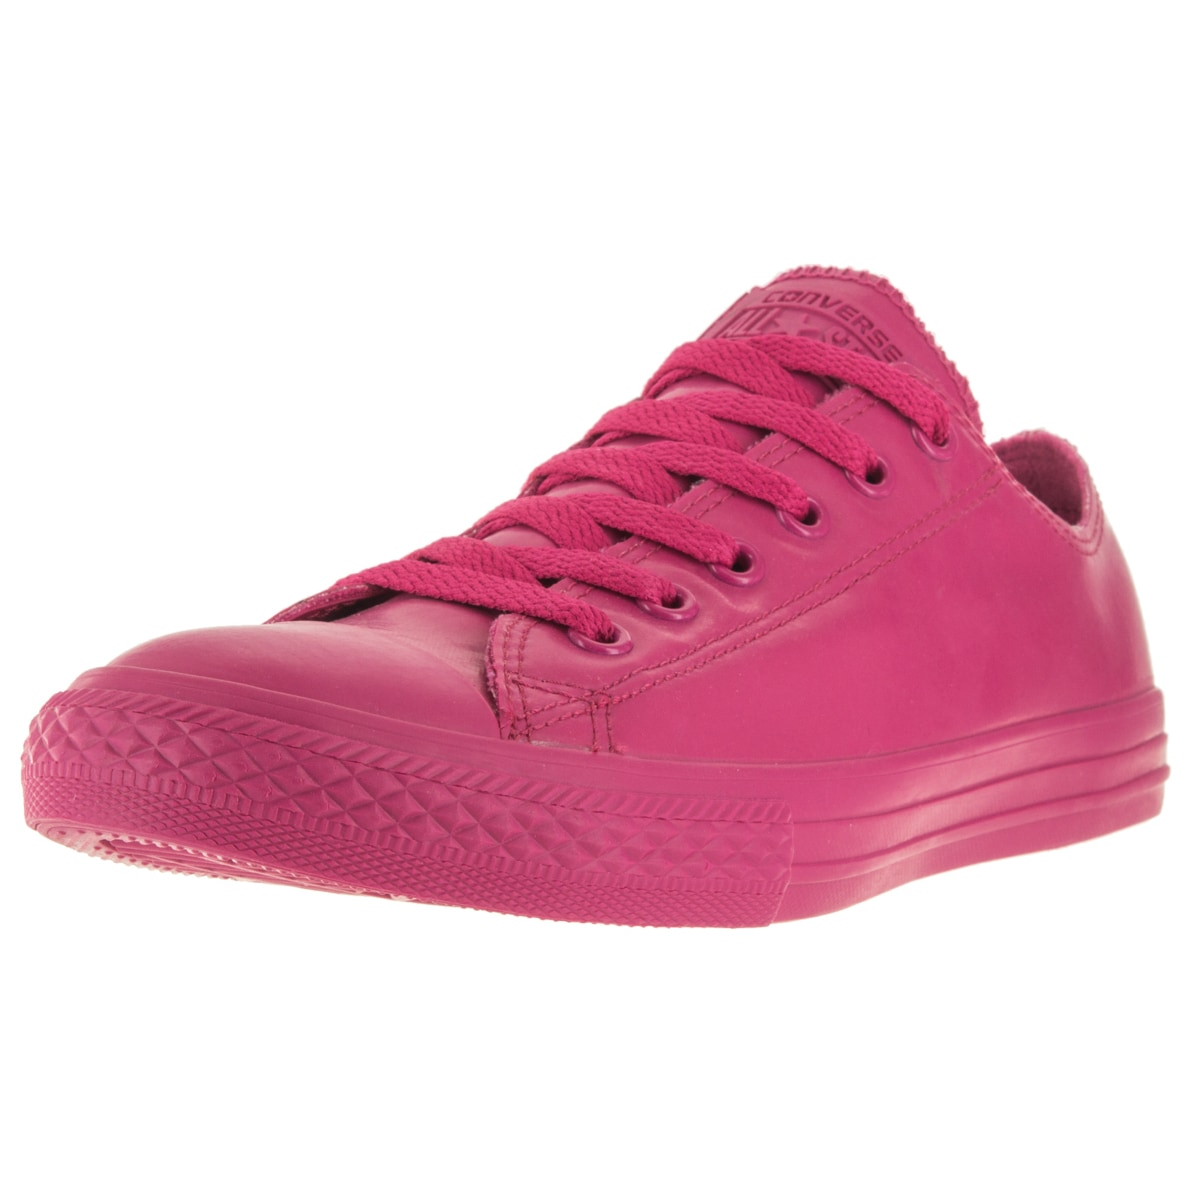 Converse Kid's Chuck Taylor All Star Rubber Ox Cosmos Pink Basketball Shoe